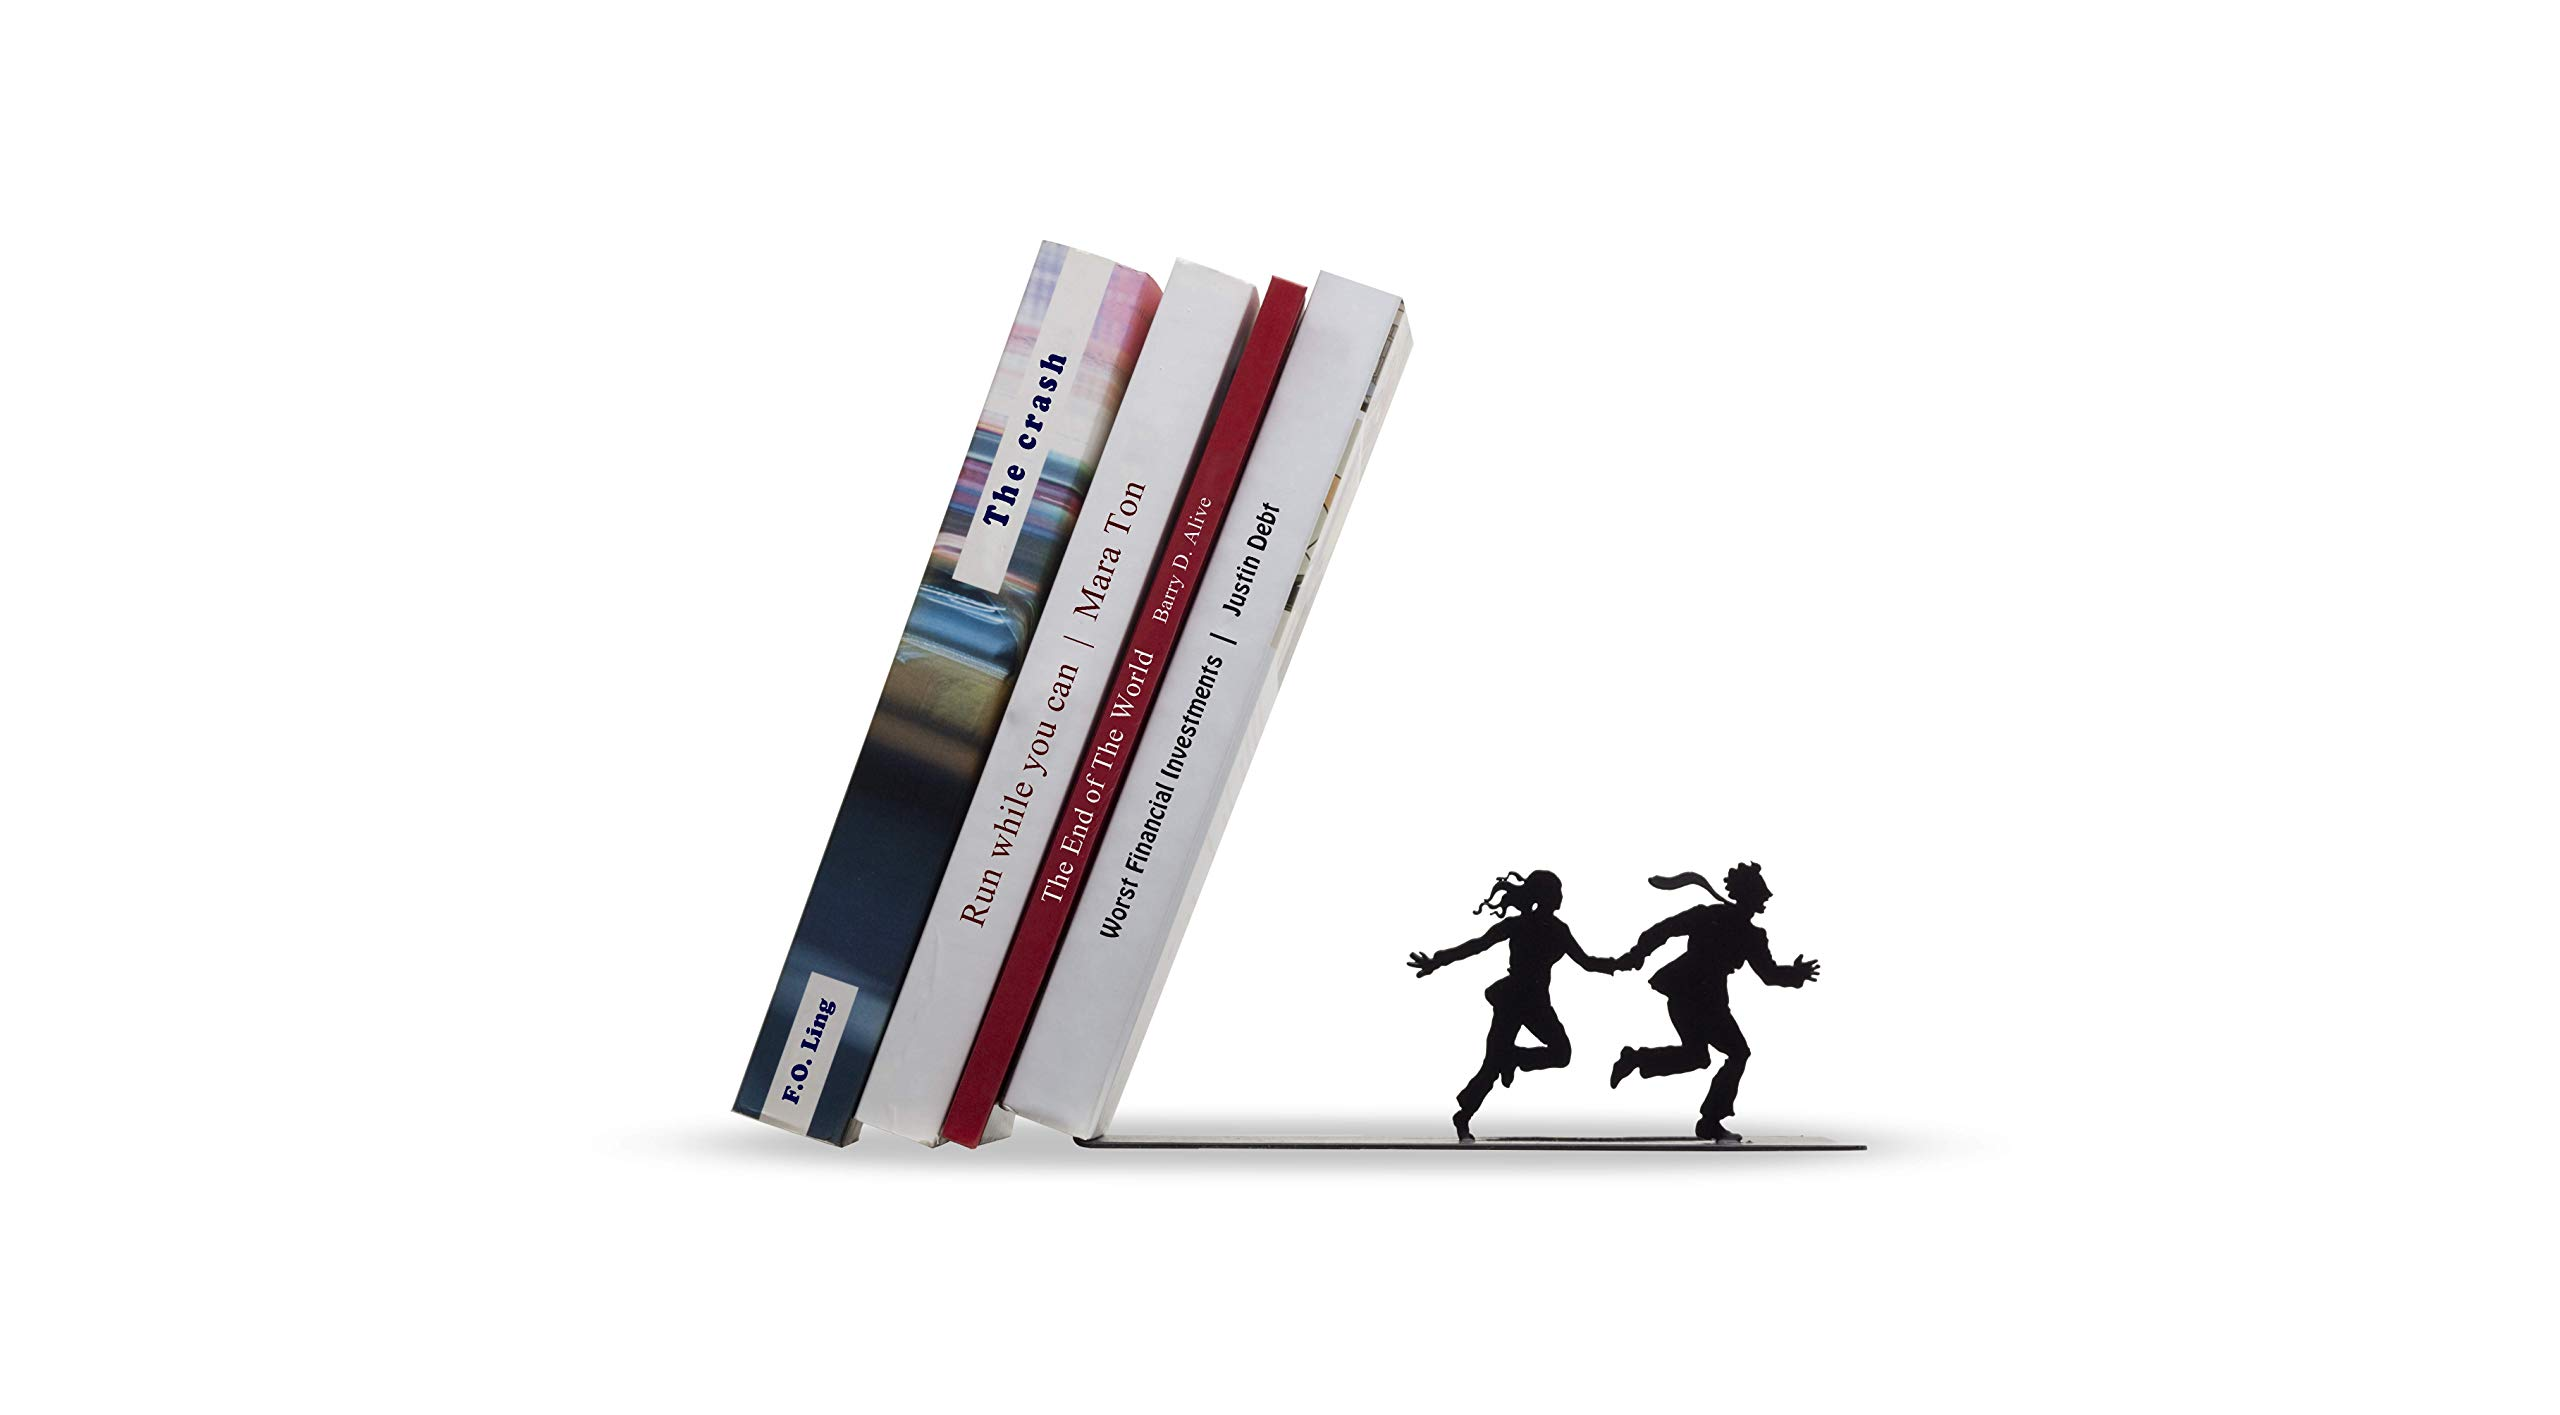 ARTORI Design Runaway Bookend - Falling Books on a Running Couple - Black Metal Bookend - Gifts for Couples, Romantic Gift by ARTORI Design